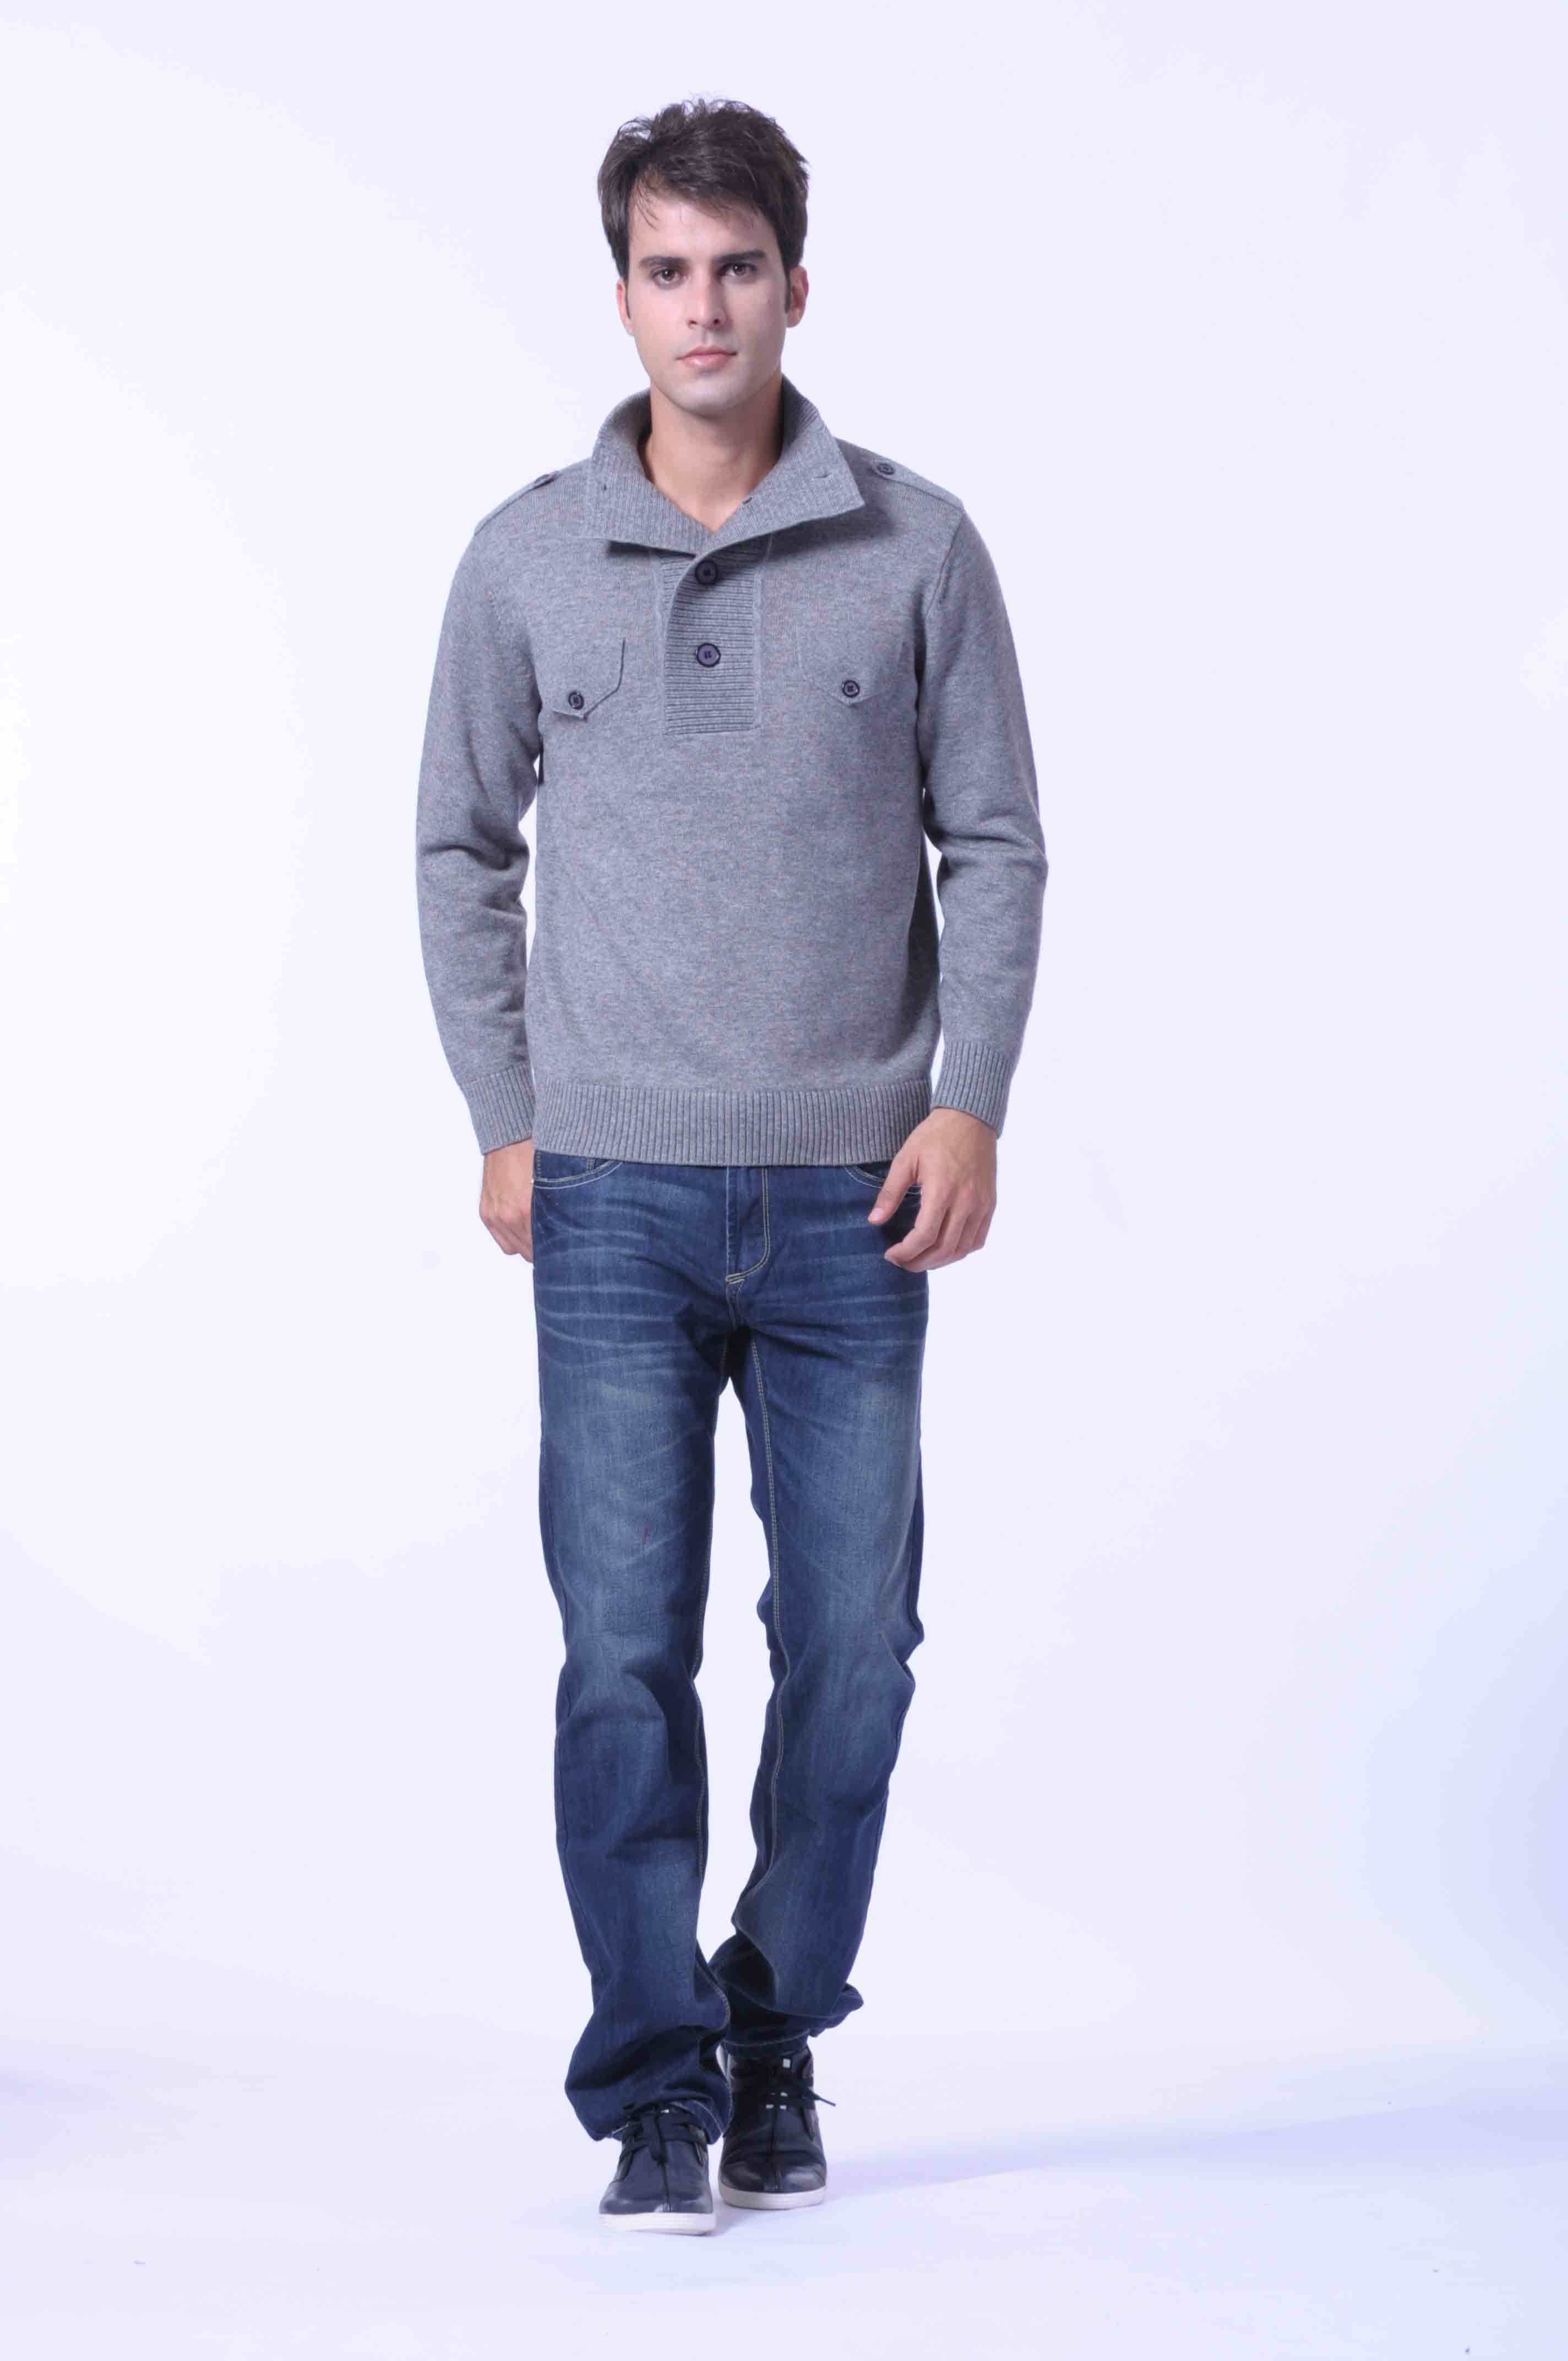 100%Yakwool /Cashmere Knitted Pullover Open Collar Sweaters/Wool Swearters/Clothing/Textile